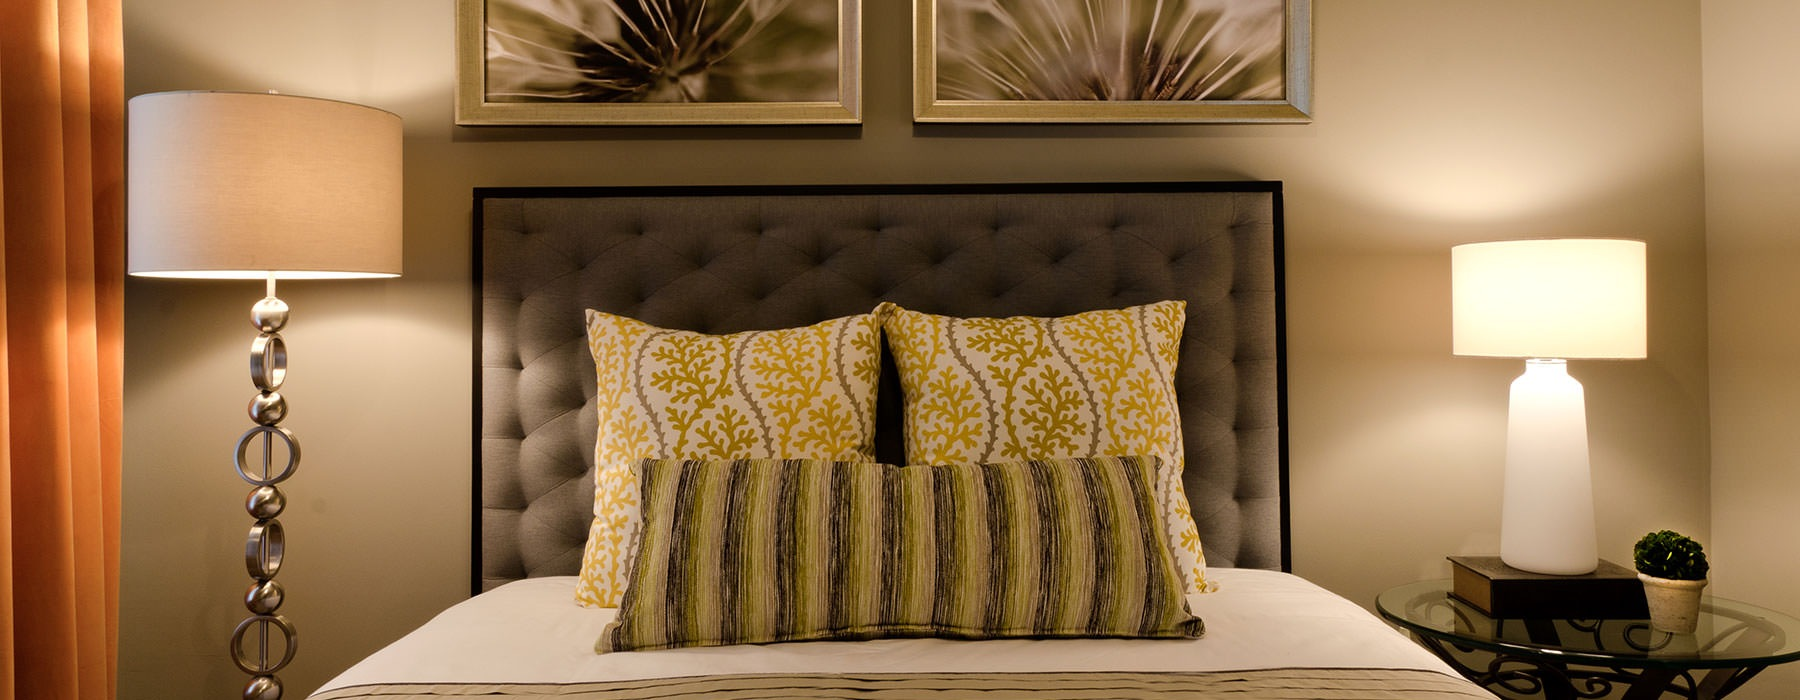 lifestyle image of a bed's headboard, pillow arrangement and lamps